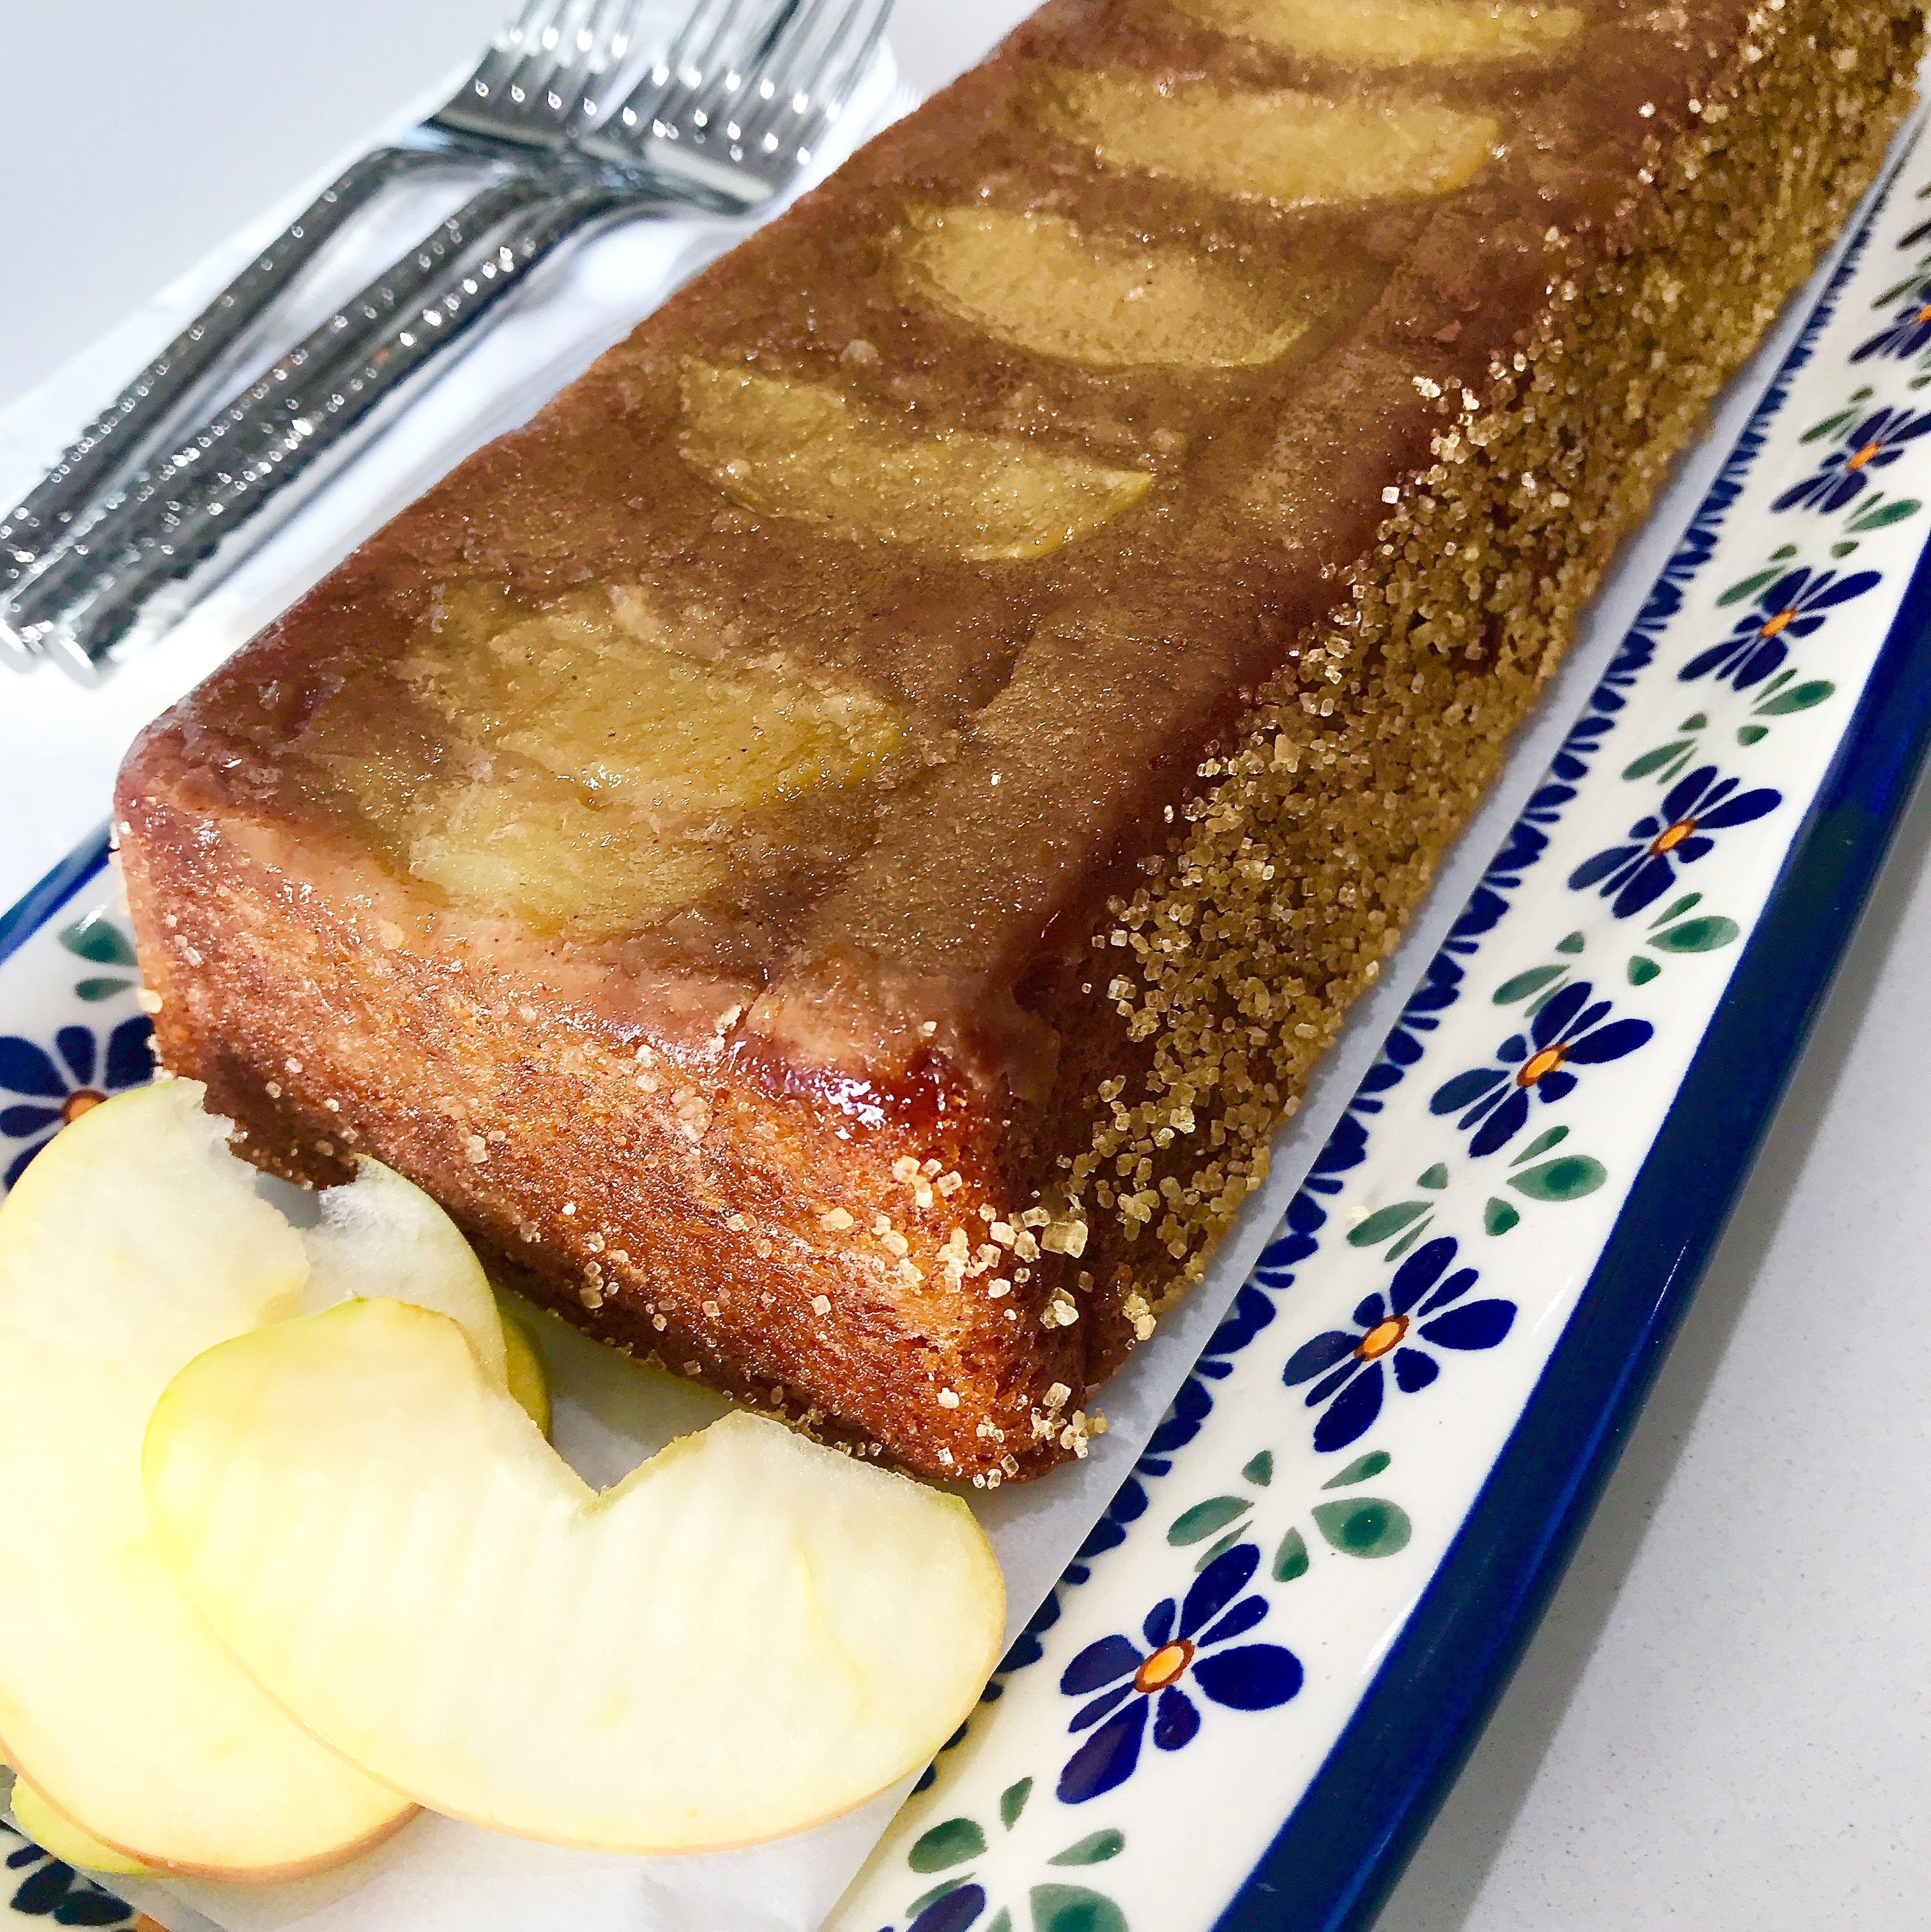 Use applesauce instead of pumpkin and apples on the bottom for a delicious, show stopping Brown Sugar Double Apple Bread.